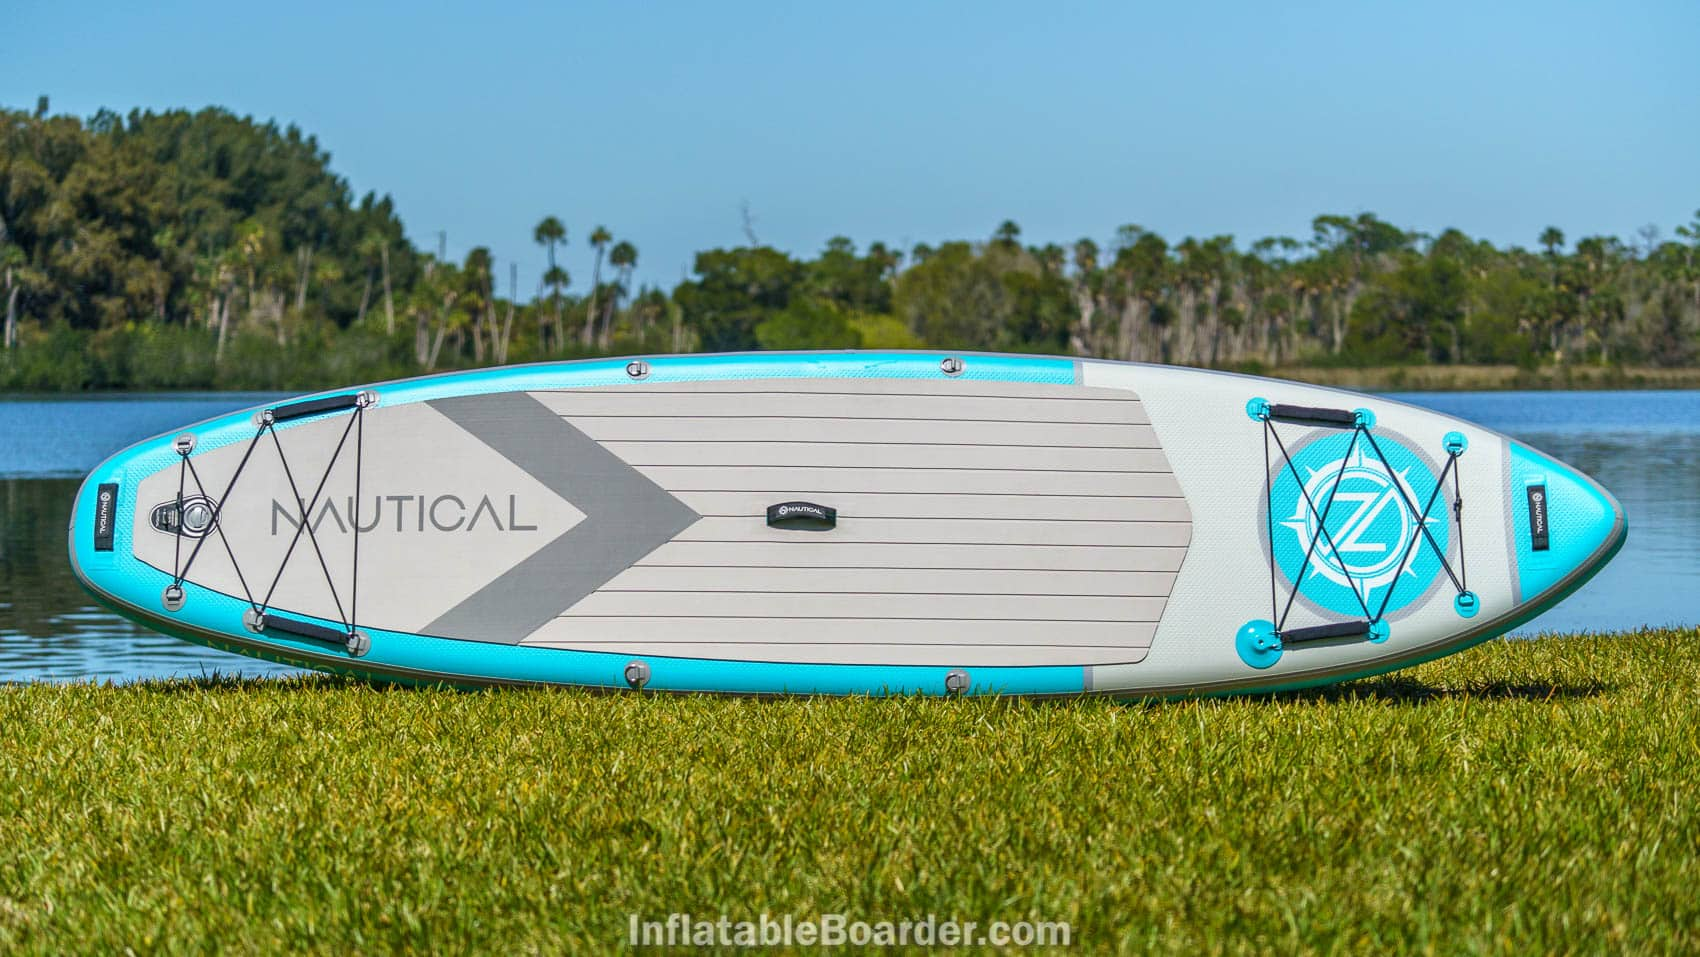 """Top overview of the 2021 Nautical 11'6"""" in teal color option."""